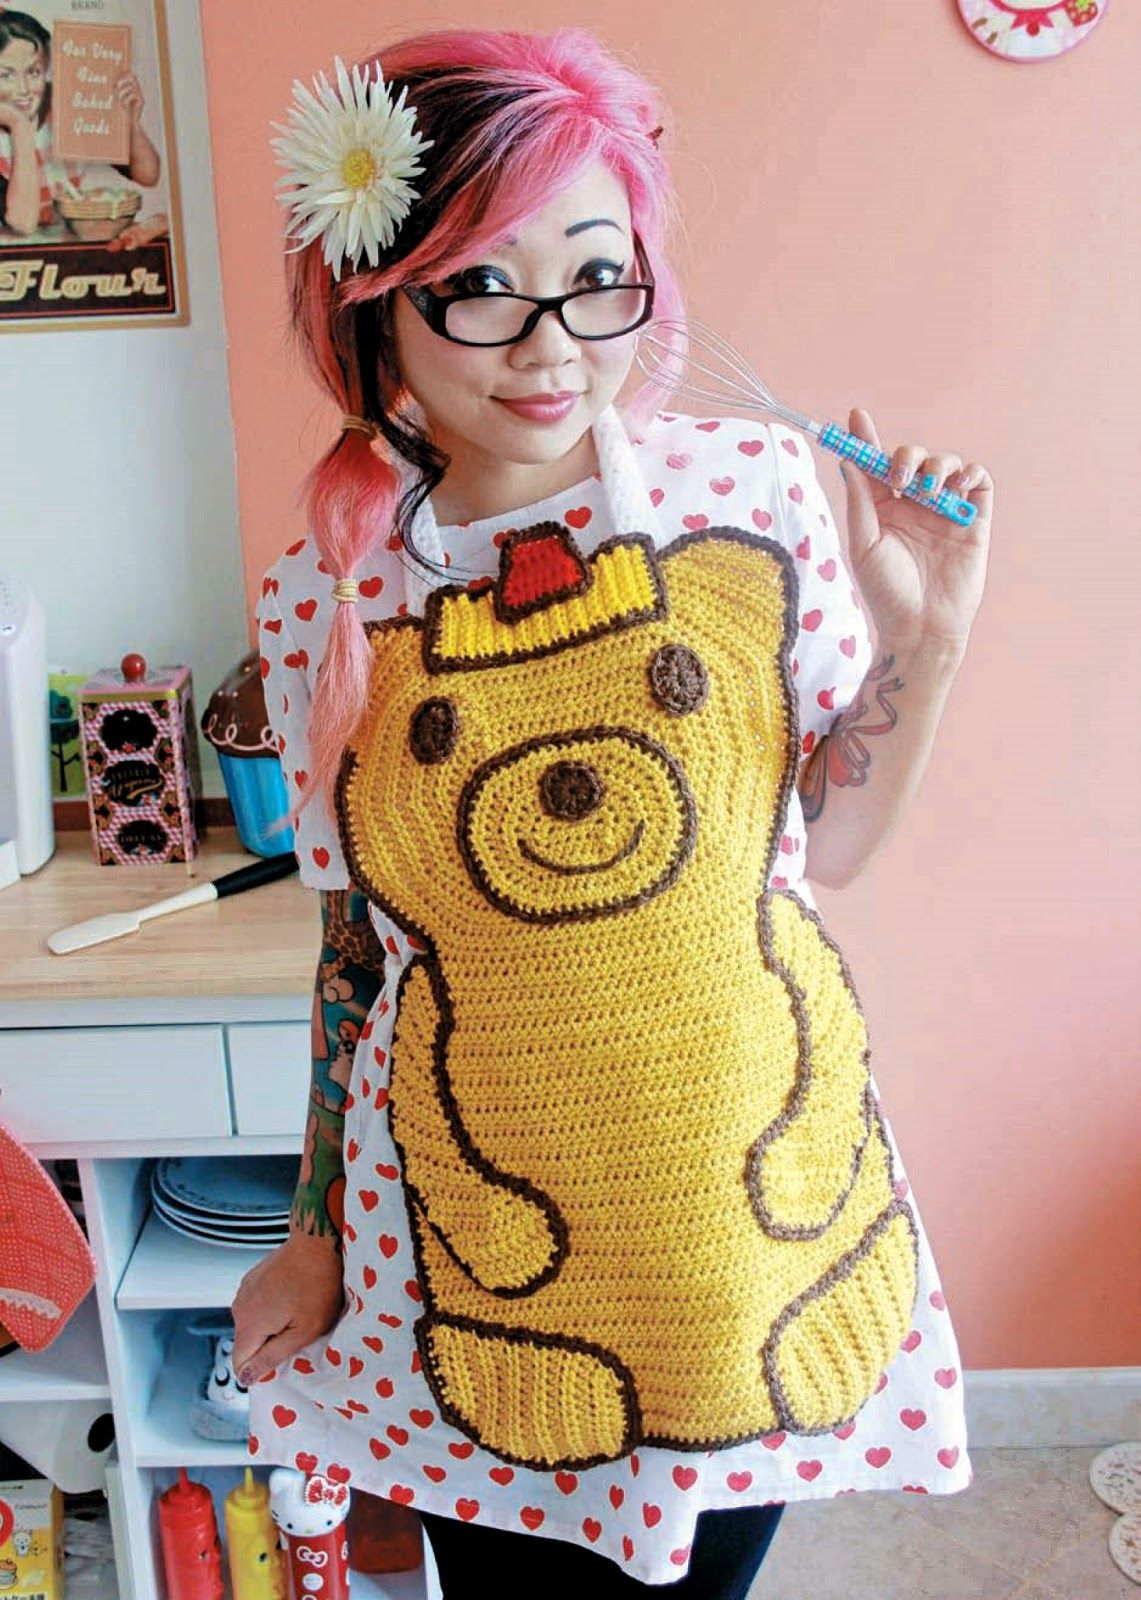 Crochet Designer And Craft Superstar Twinkie Chan Is Back With Her Highly Anticipated Book Crocheted Abode A La Mode Twinkie Chan Crochet Food Crochet Projects